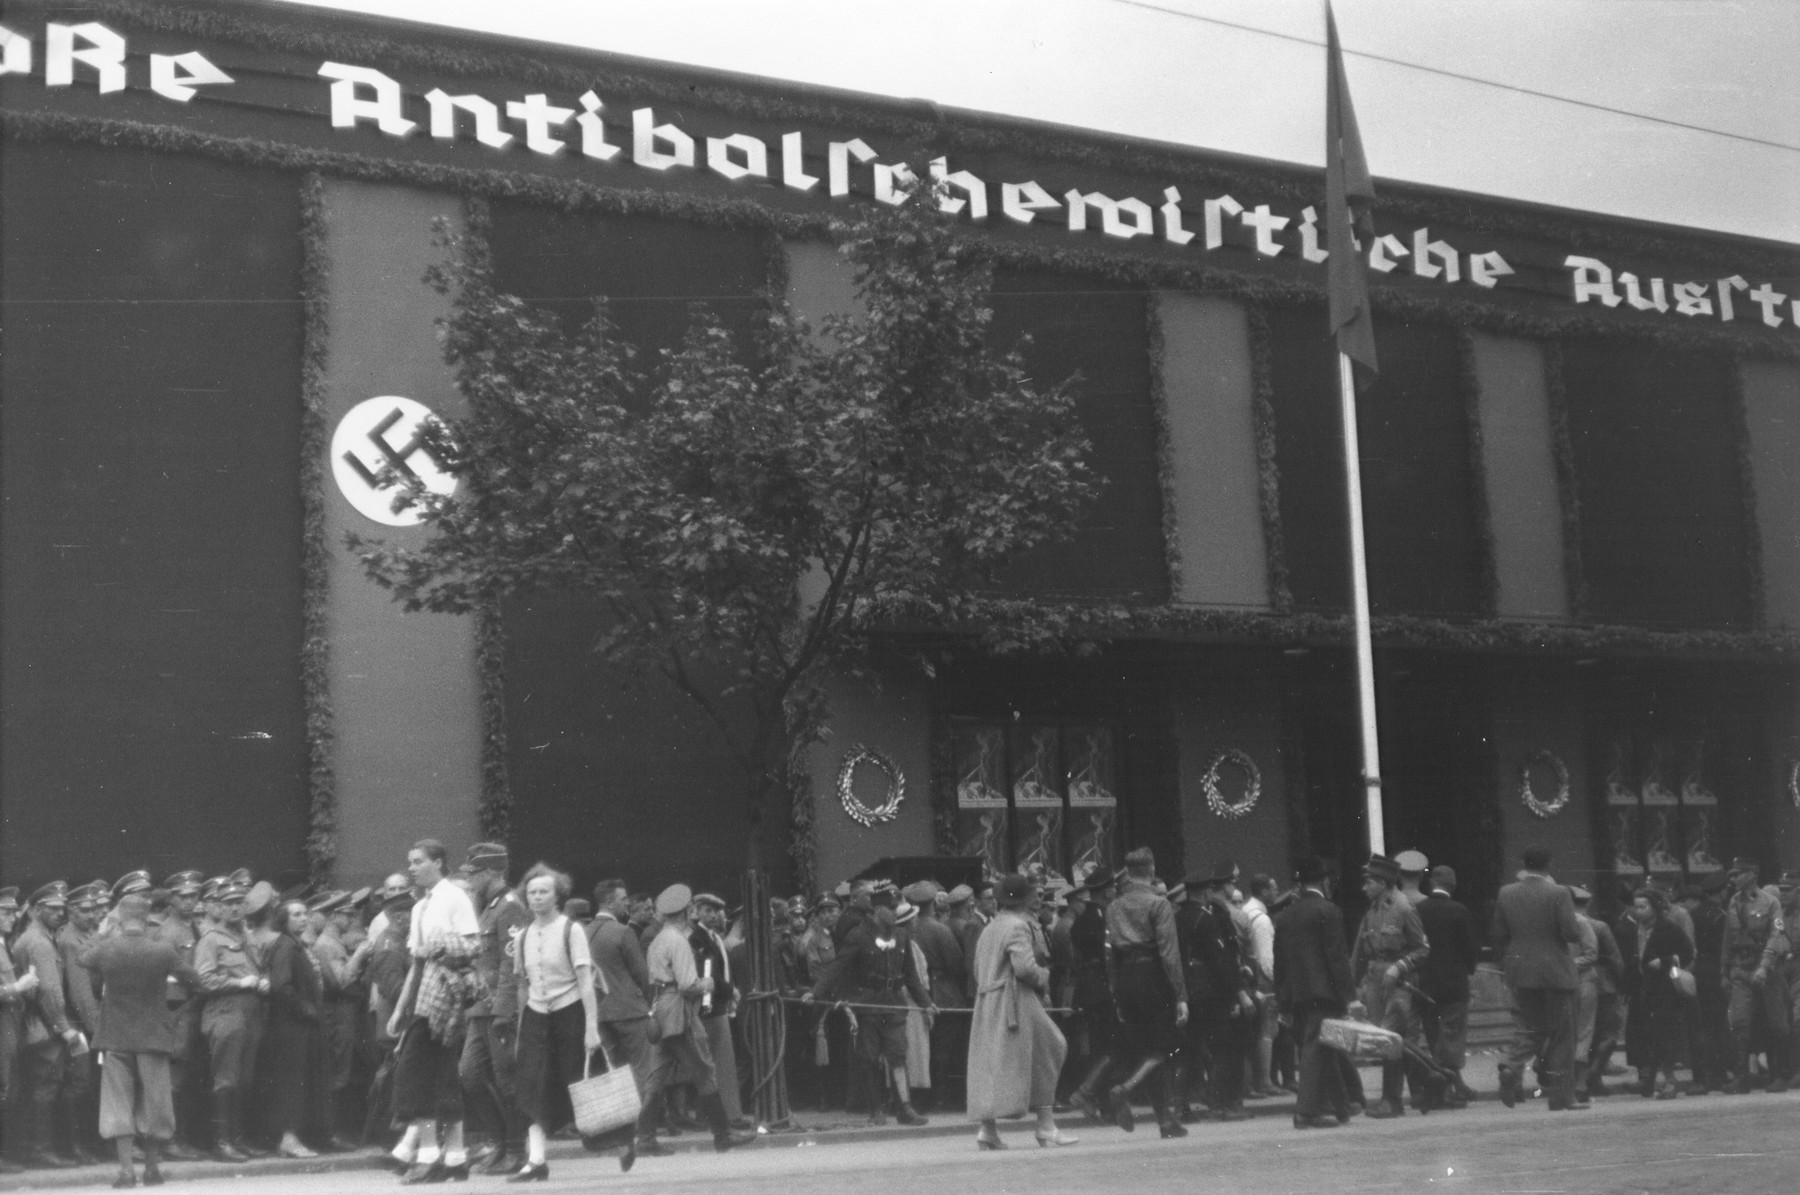 Visitors line up in front of a hall adorned with Nazi banners in order to attend the opening of the Great Anti-Bolshevism Exhibition 1937 (Grosse Antibolschewistische Ausstellung) in Nuremberg.